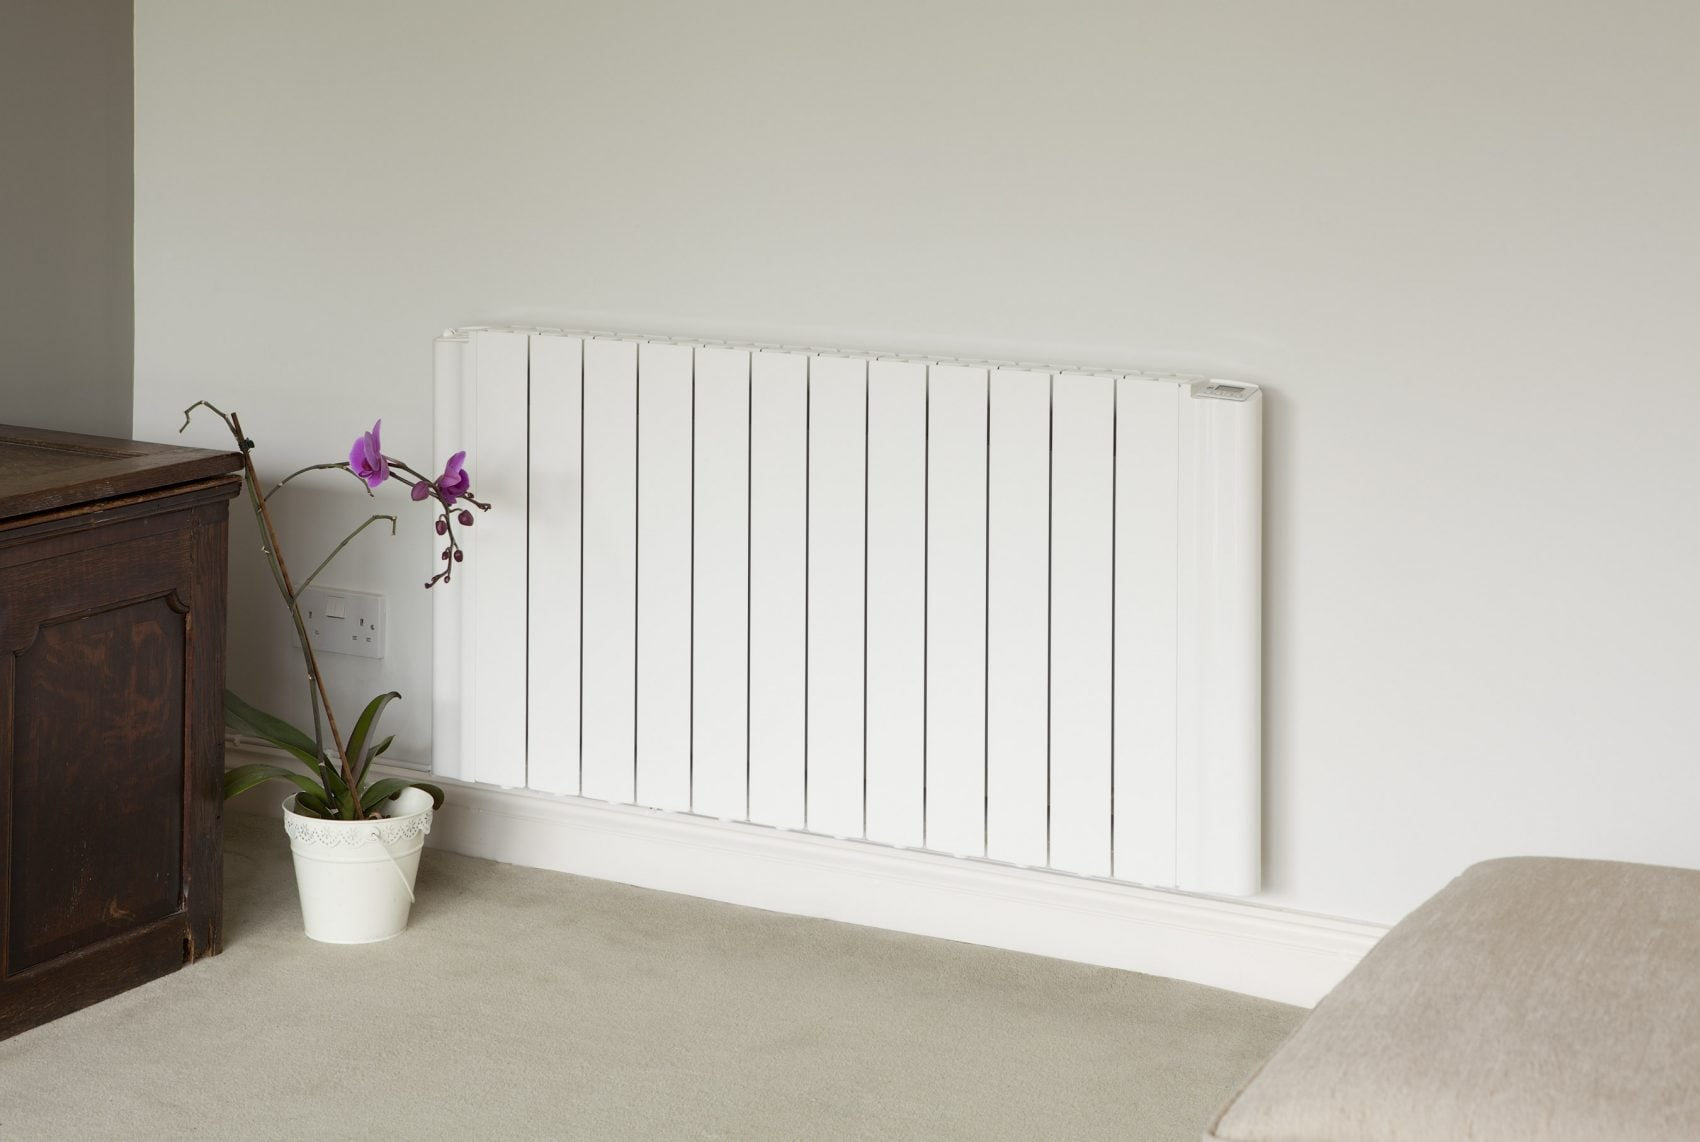 Electric Central Heating Systems, What are The Benefits?